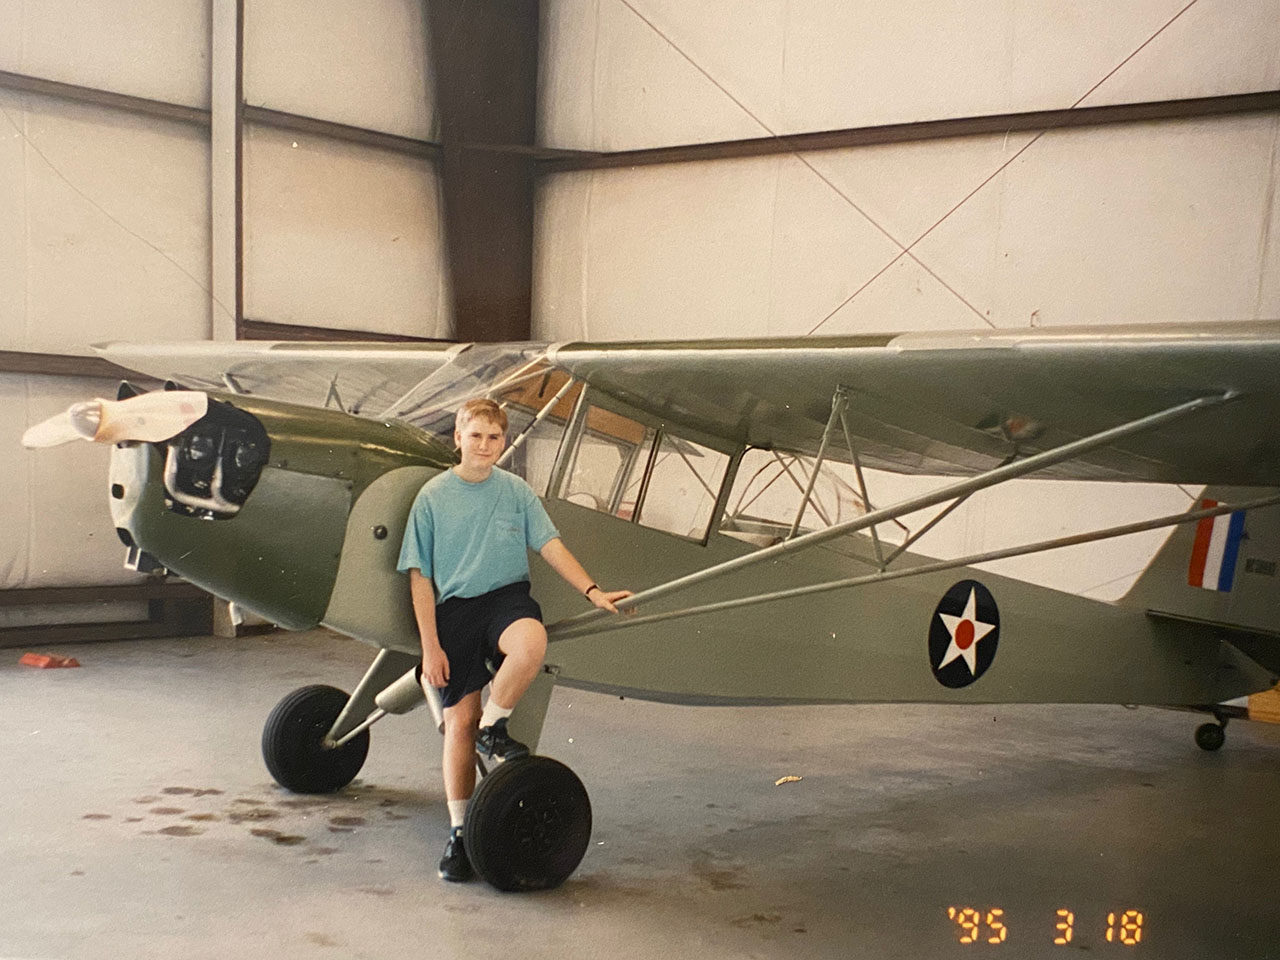 Jeremy King as a young airplane nut.